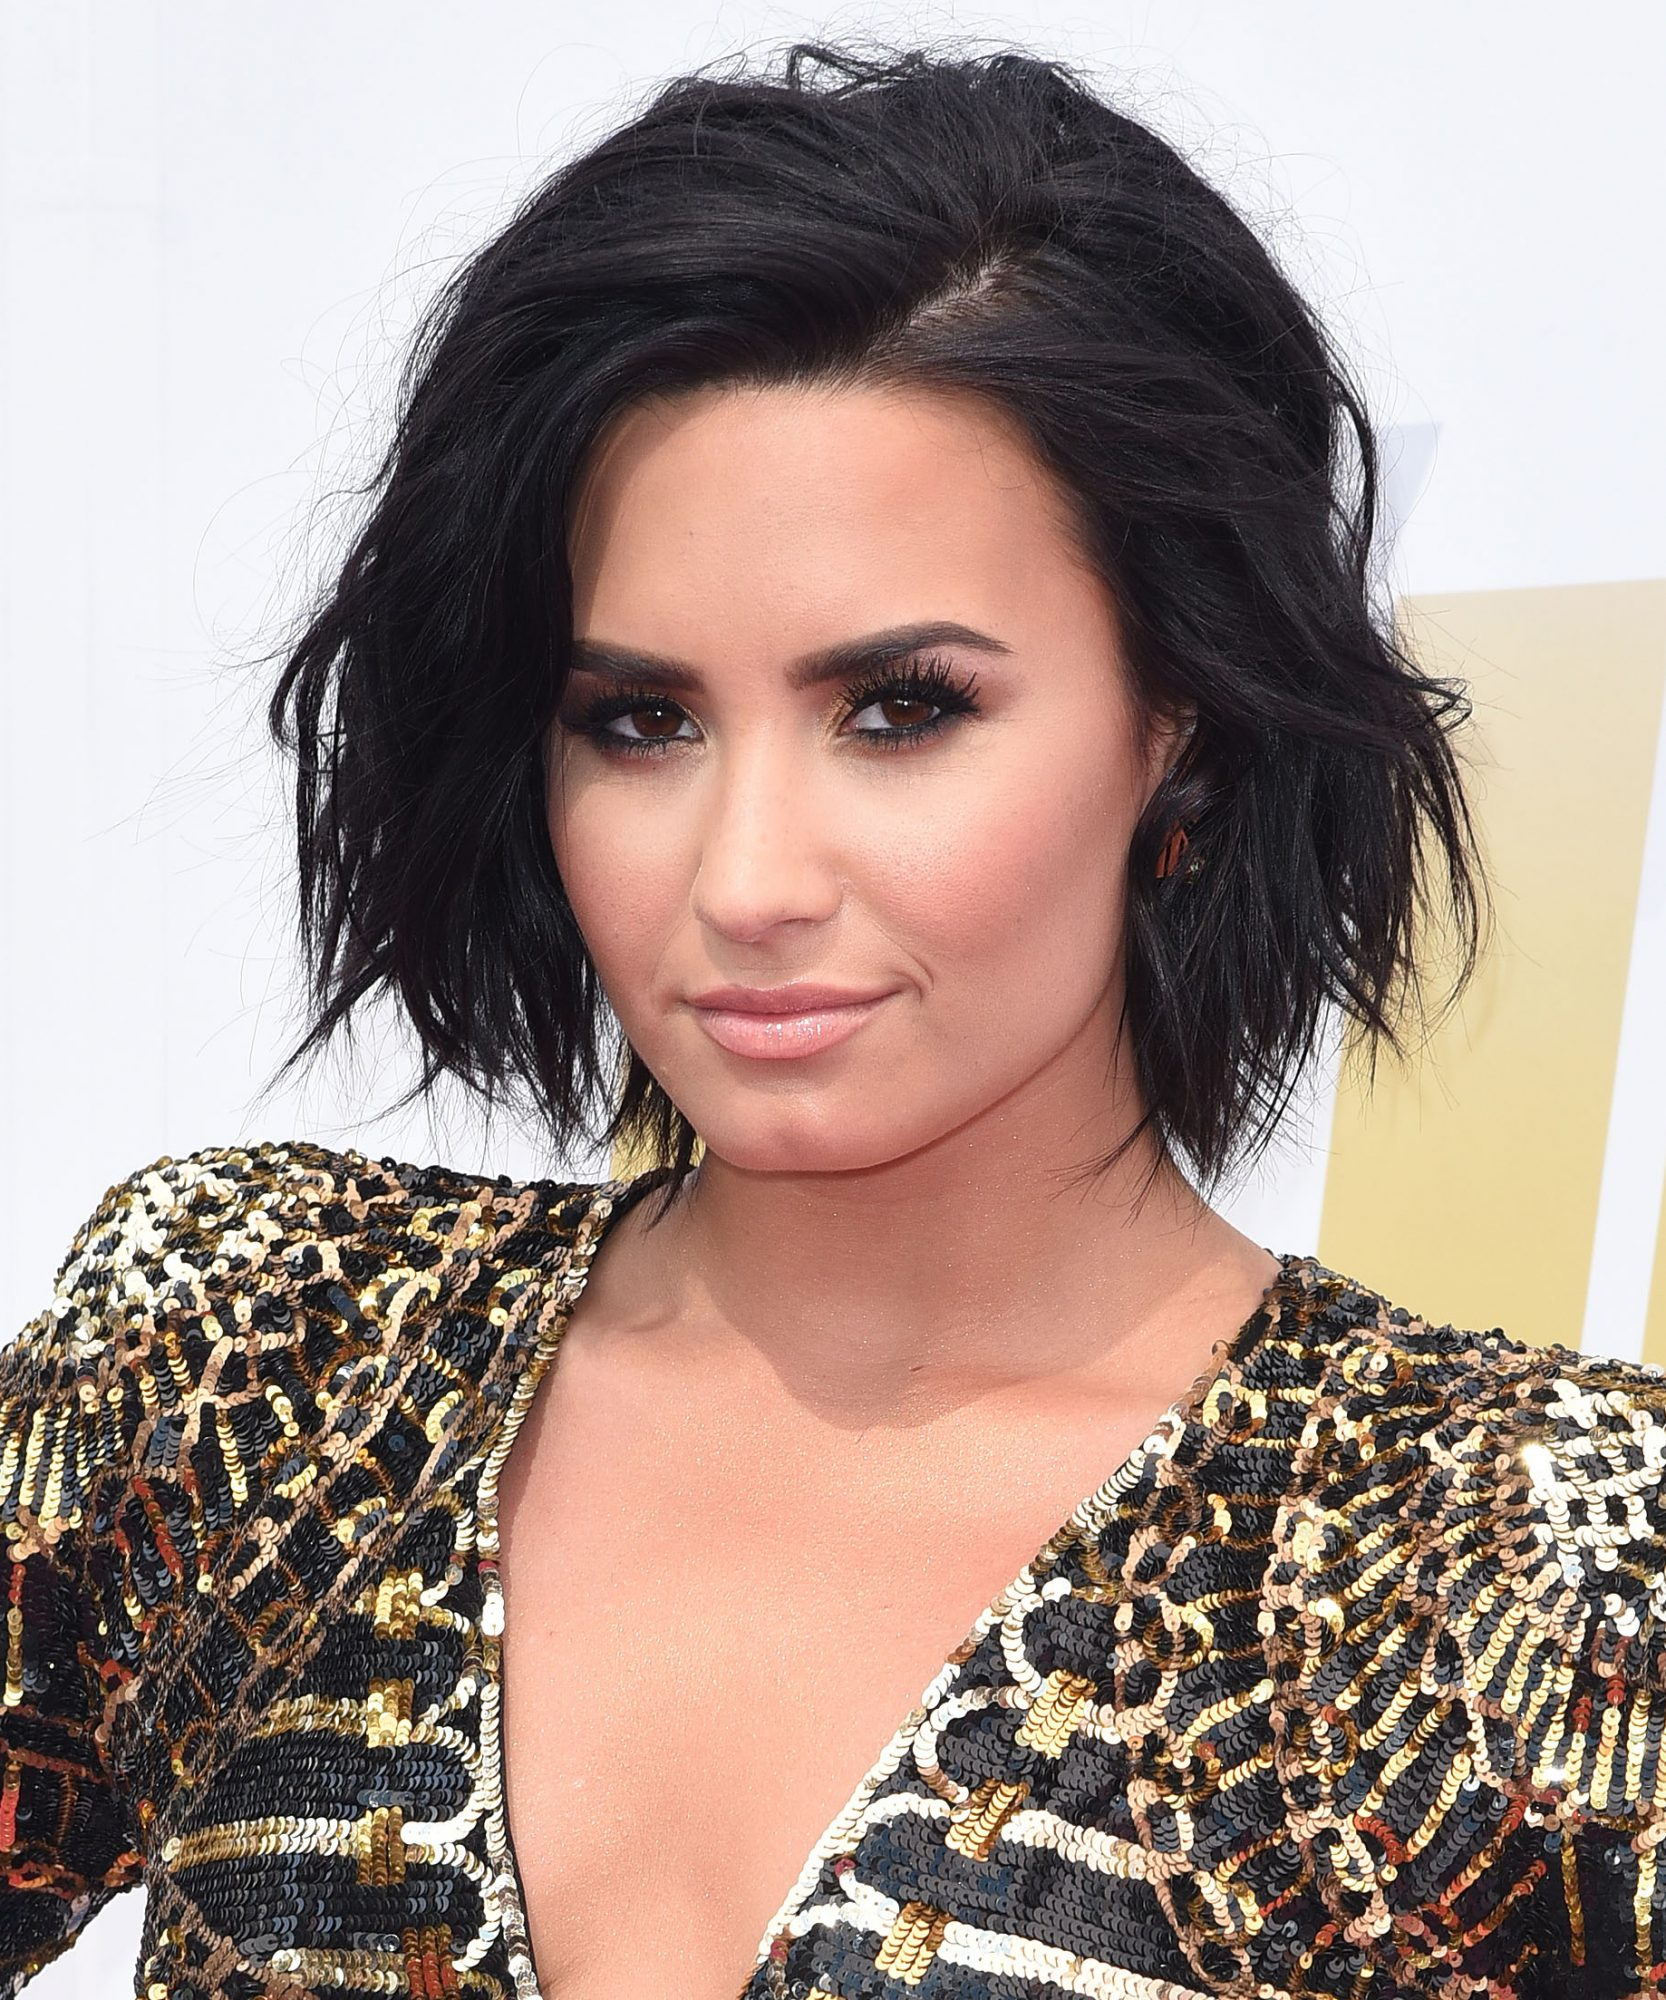 demi lovato new hair style demi lovato shows more boxing skills on instagram 7290